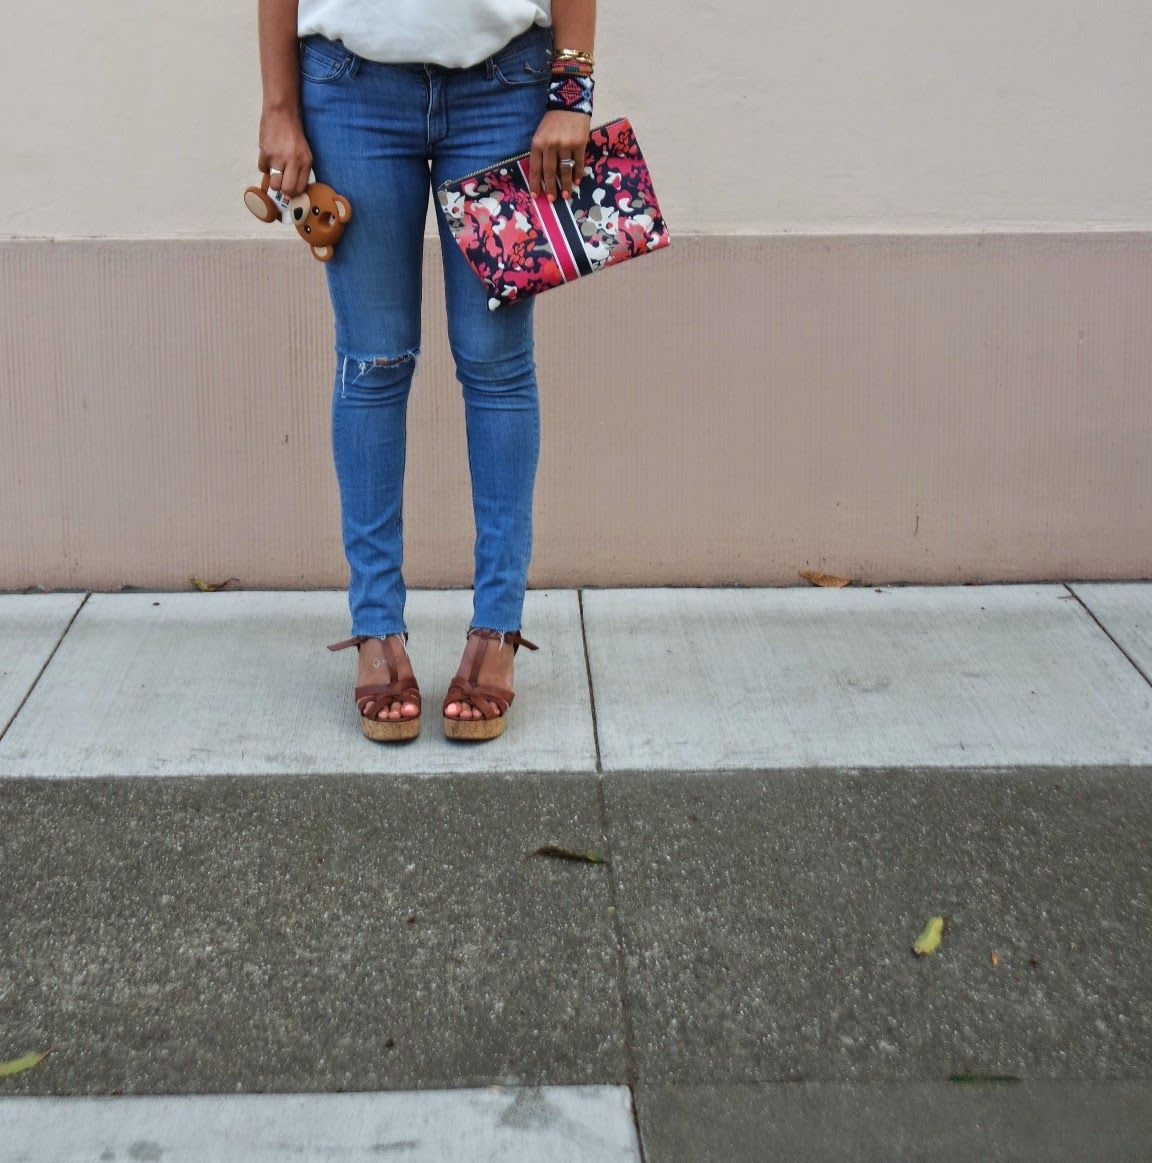 floral clutch, teddy bear phone case, ripped jeans